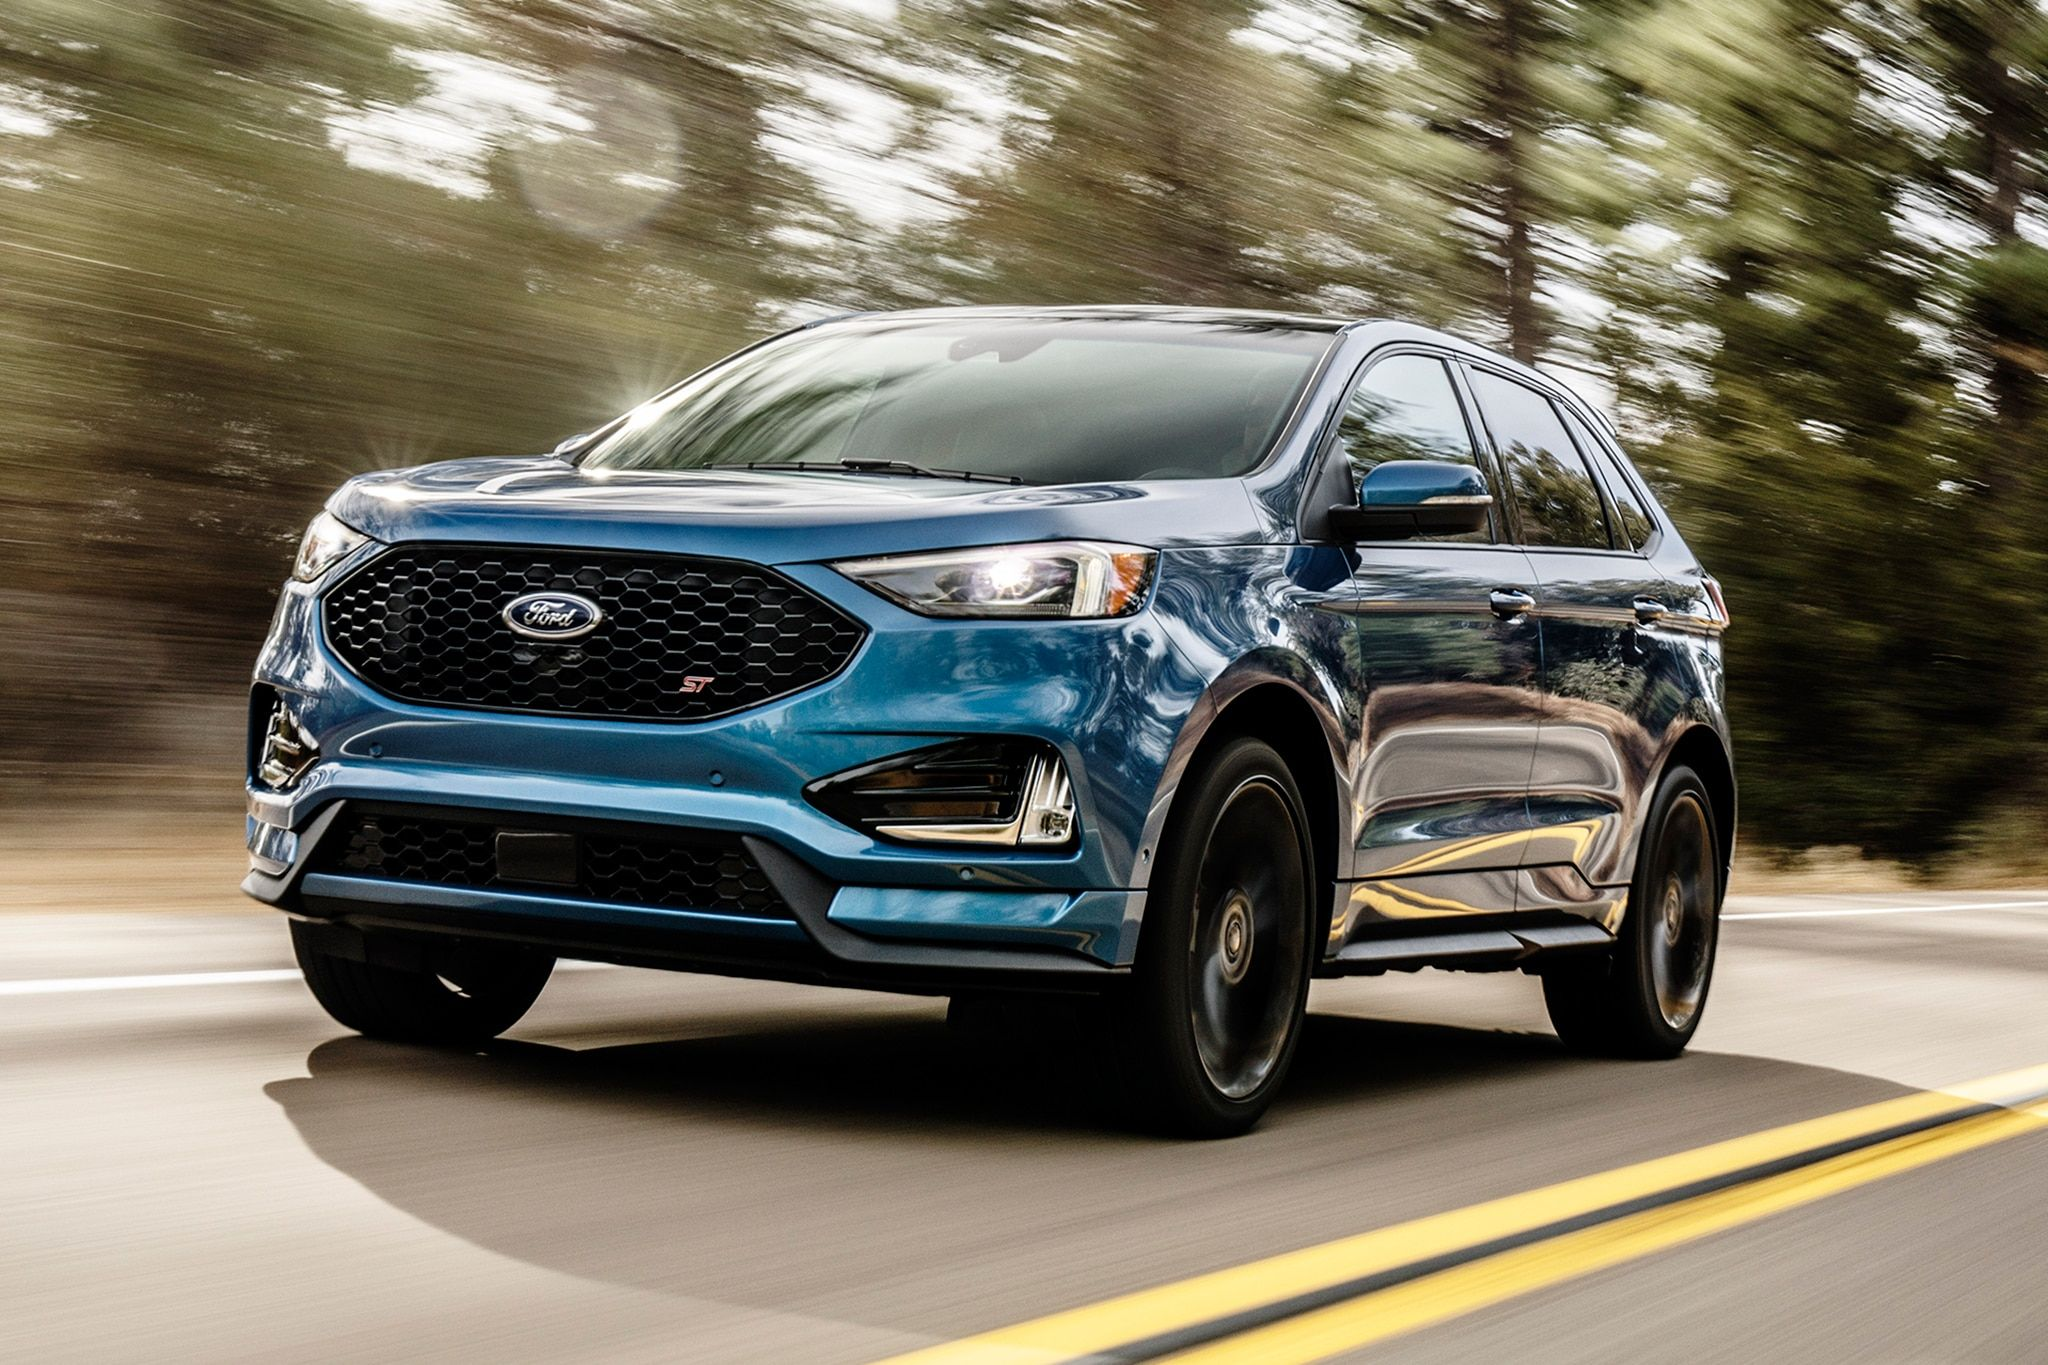 Facelifted 2019 Ford Edge Gets a 238 HP Turbo sel